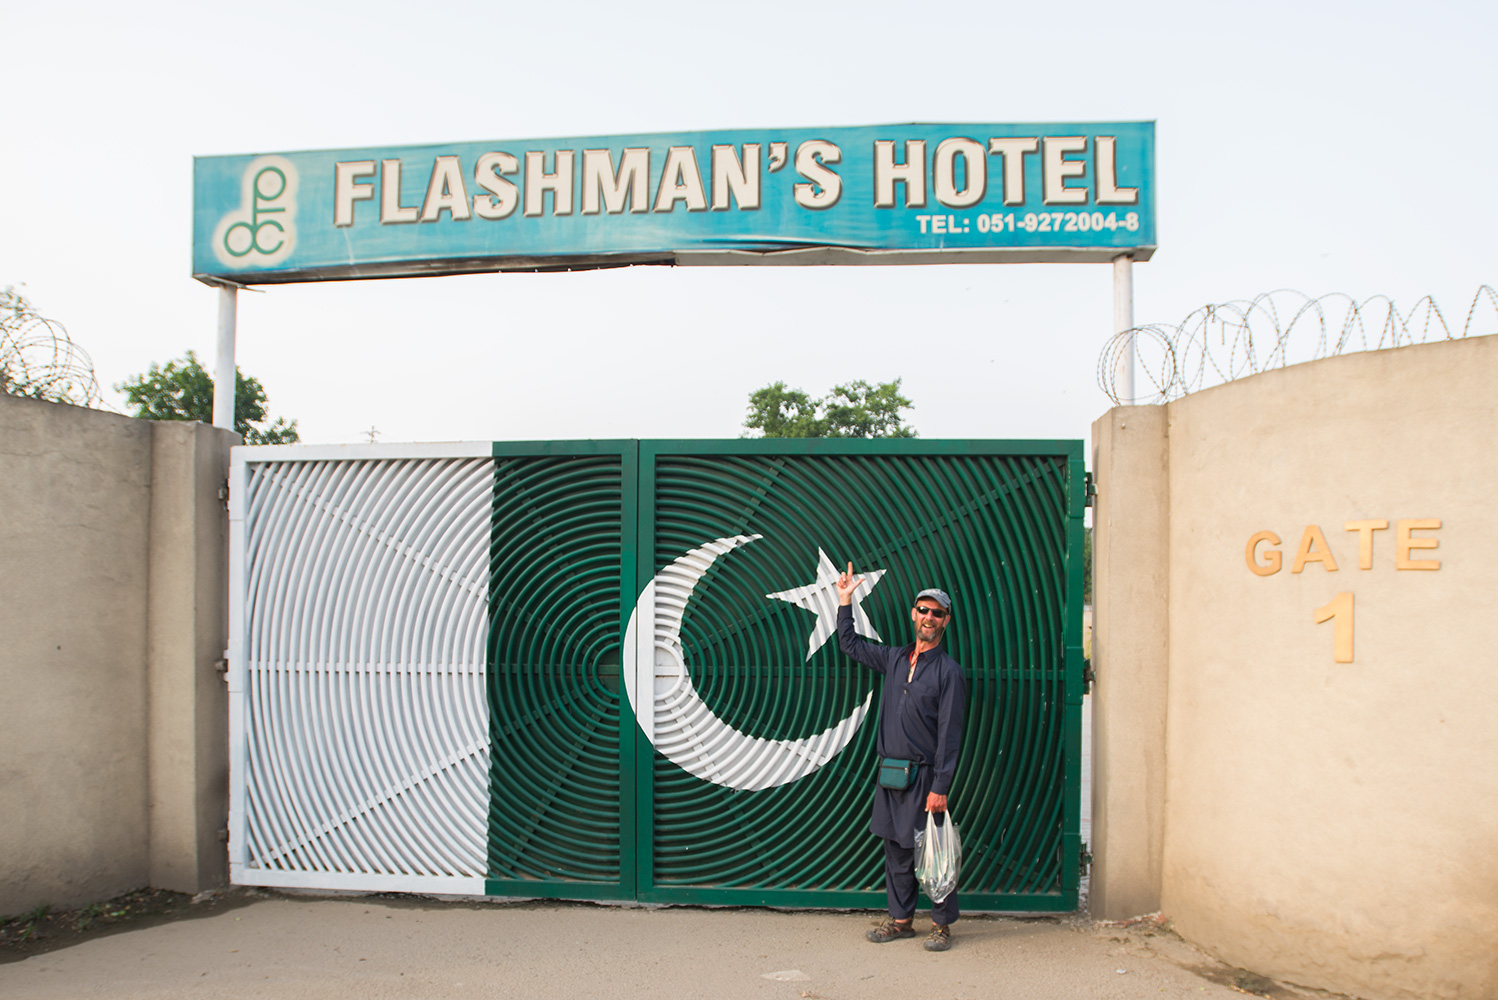 For several years Flashmans was our base in Pakistan